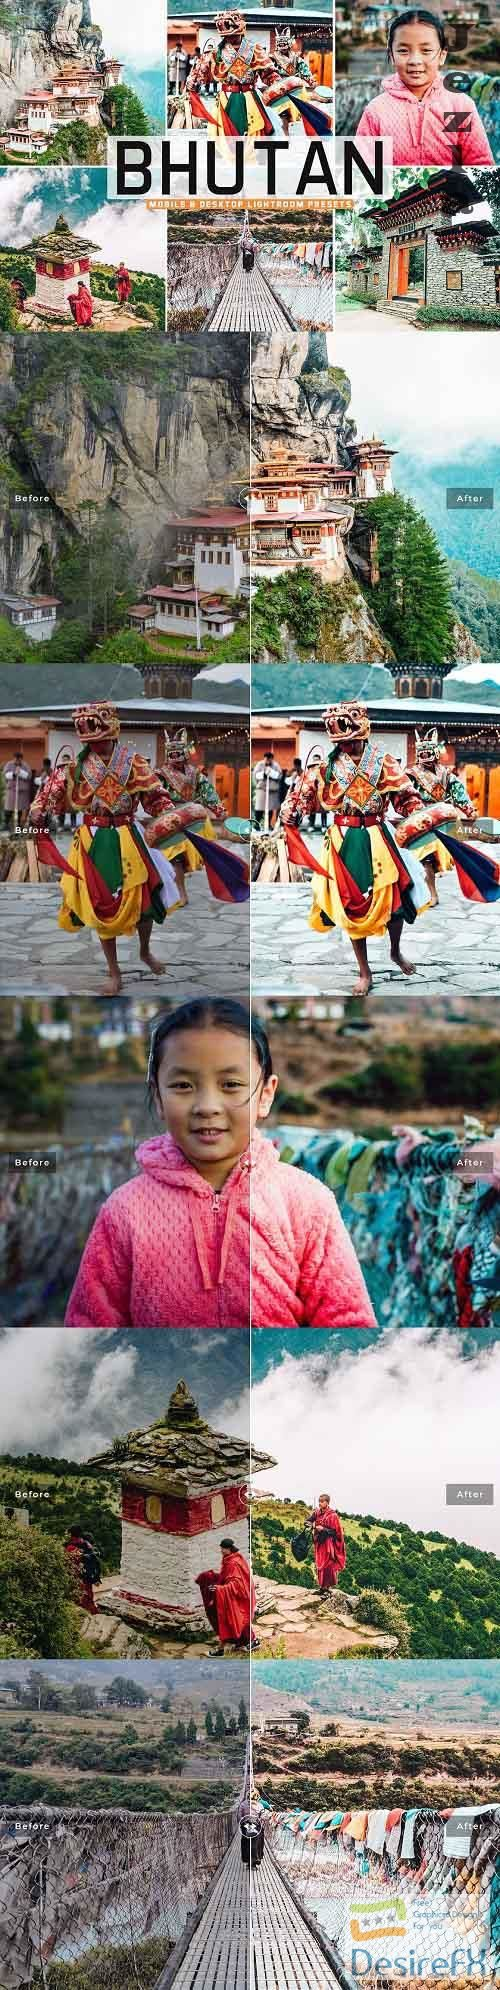 Bhutan Pro Lightroom Presets - 5542490 - Mobile & Desktop